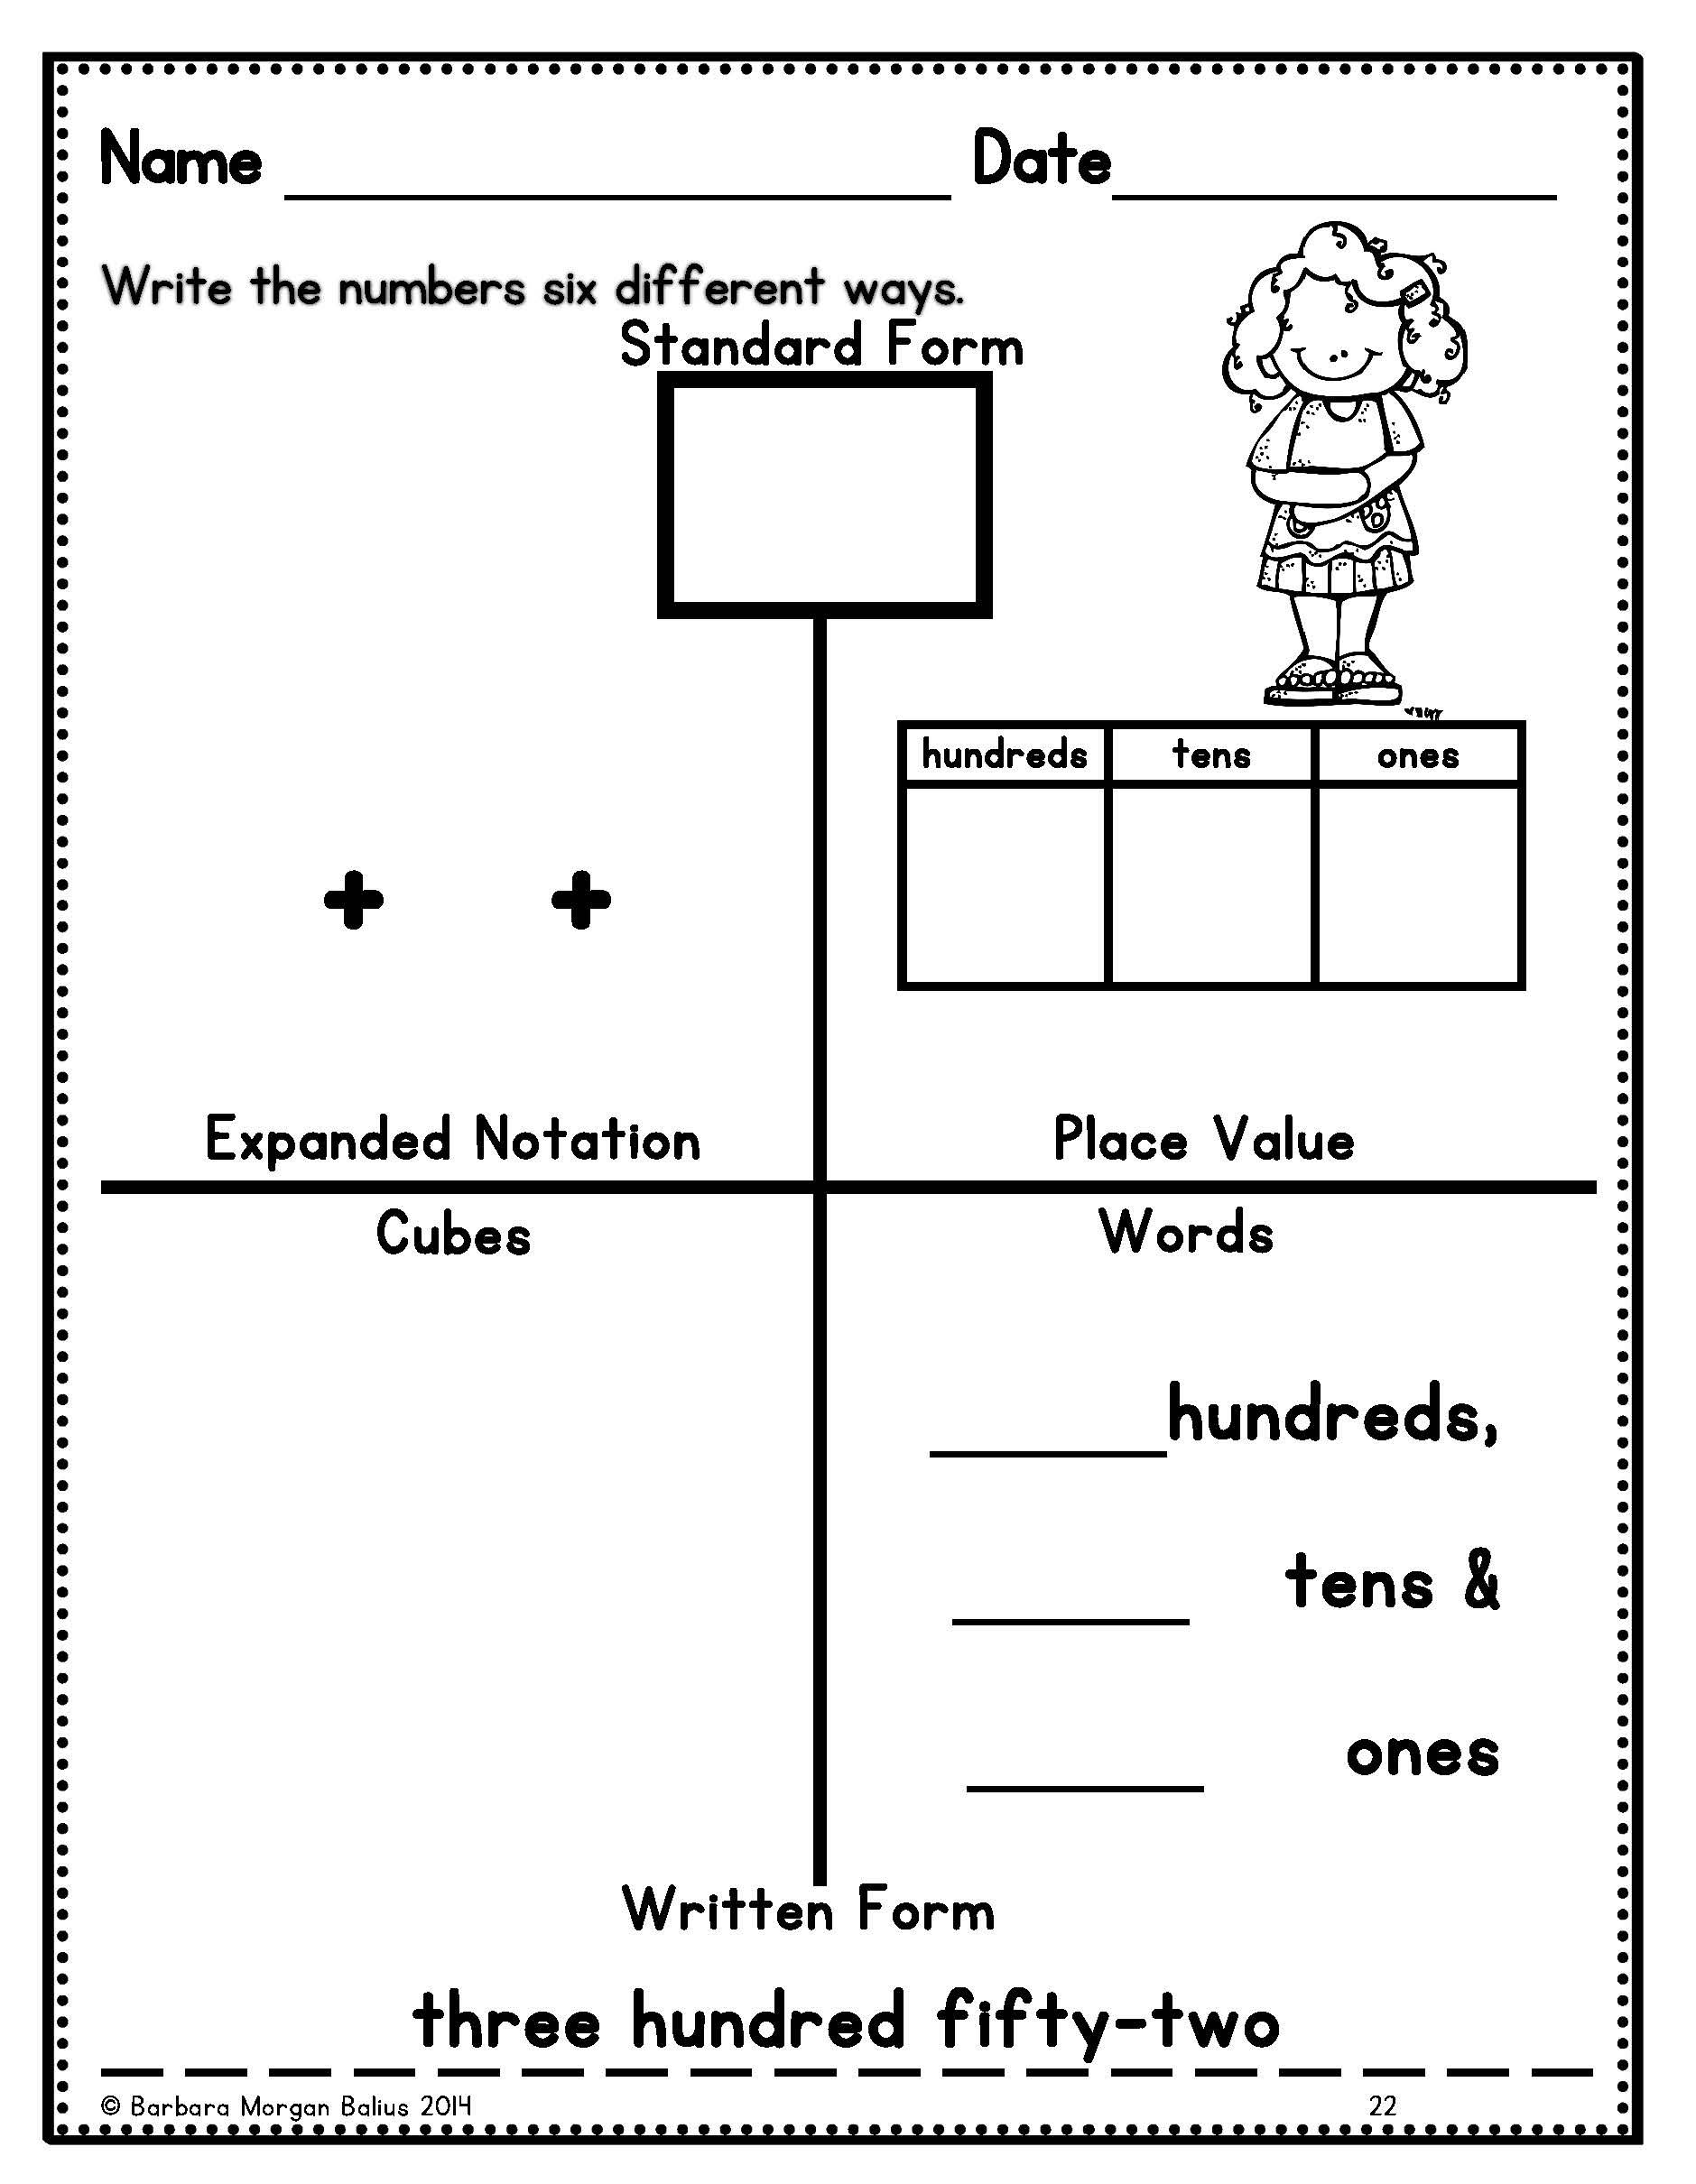 Worksheet Place Value Practice Grass Fedjp Worksheet Study Site